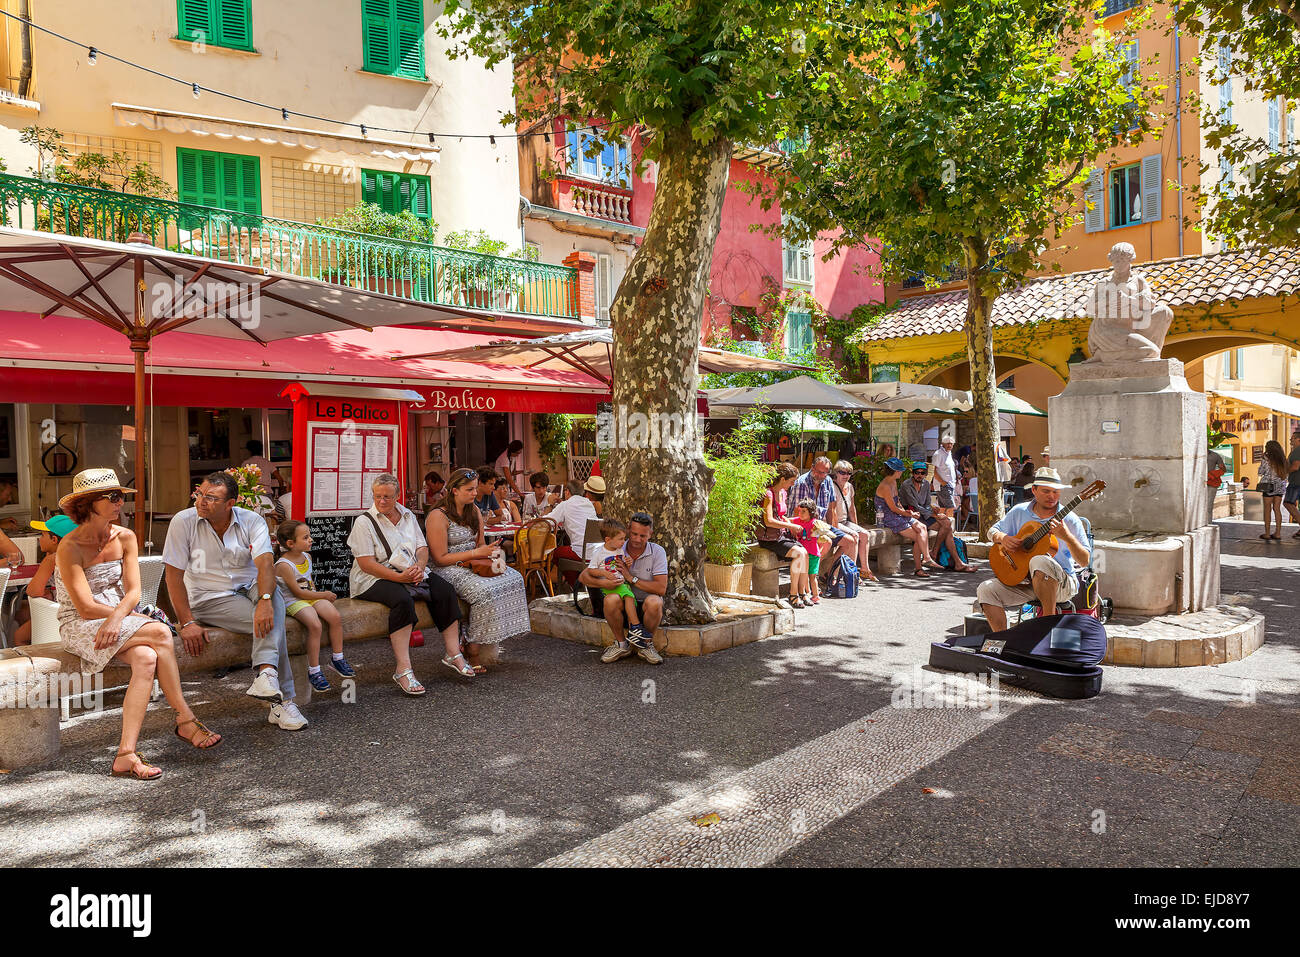 People listening to street musician on small square in old town of Menton, France. Stock Photo